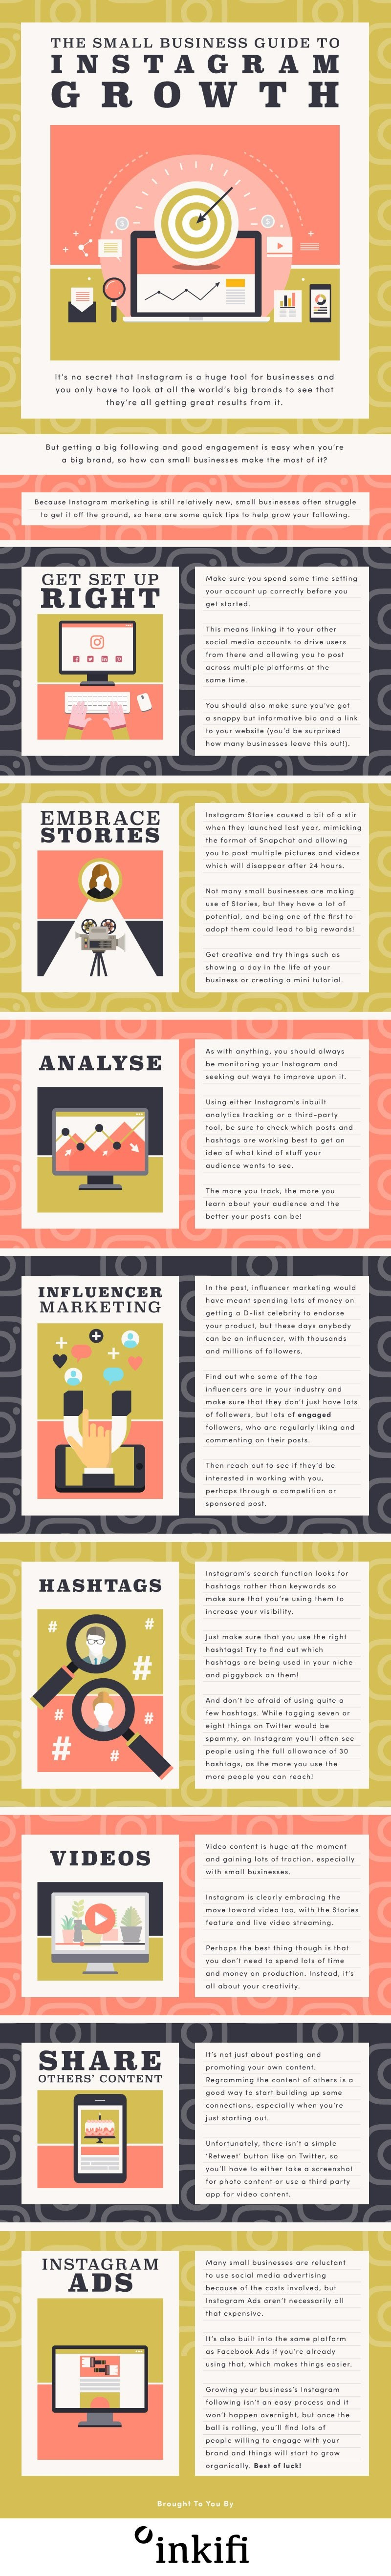 The Small Business Guide to Instagram Growth [Infographic] | Social Media Today